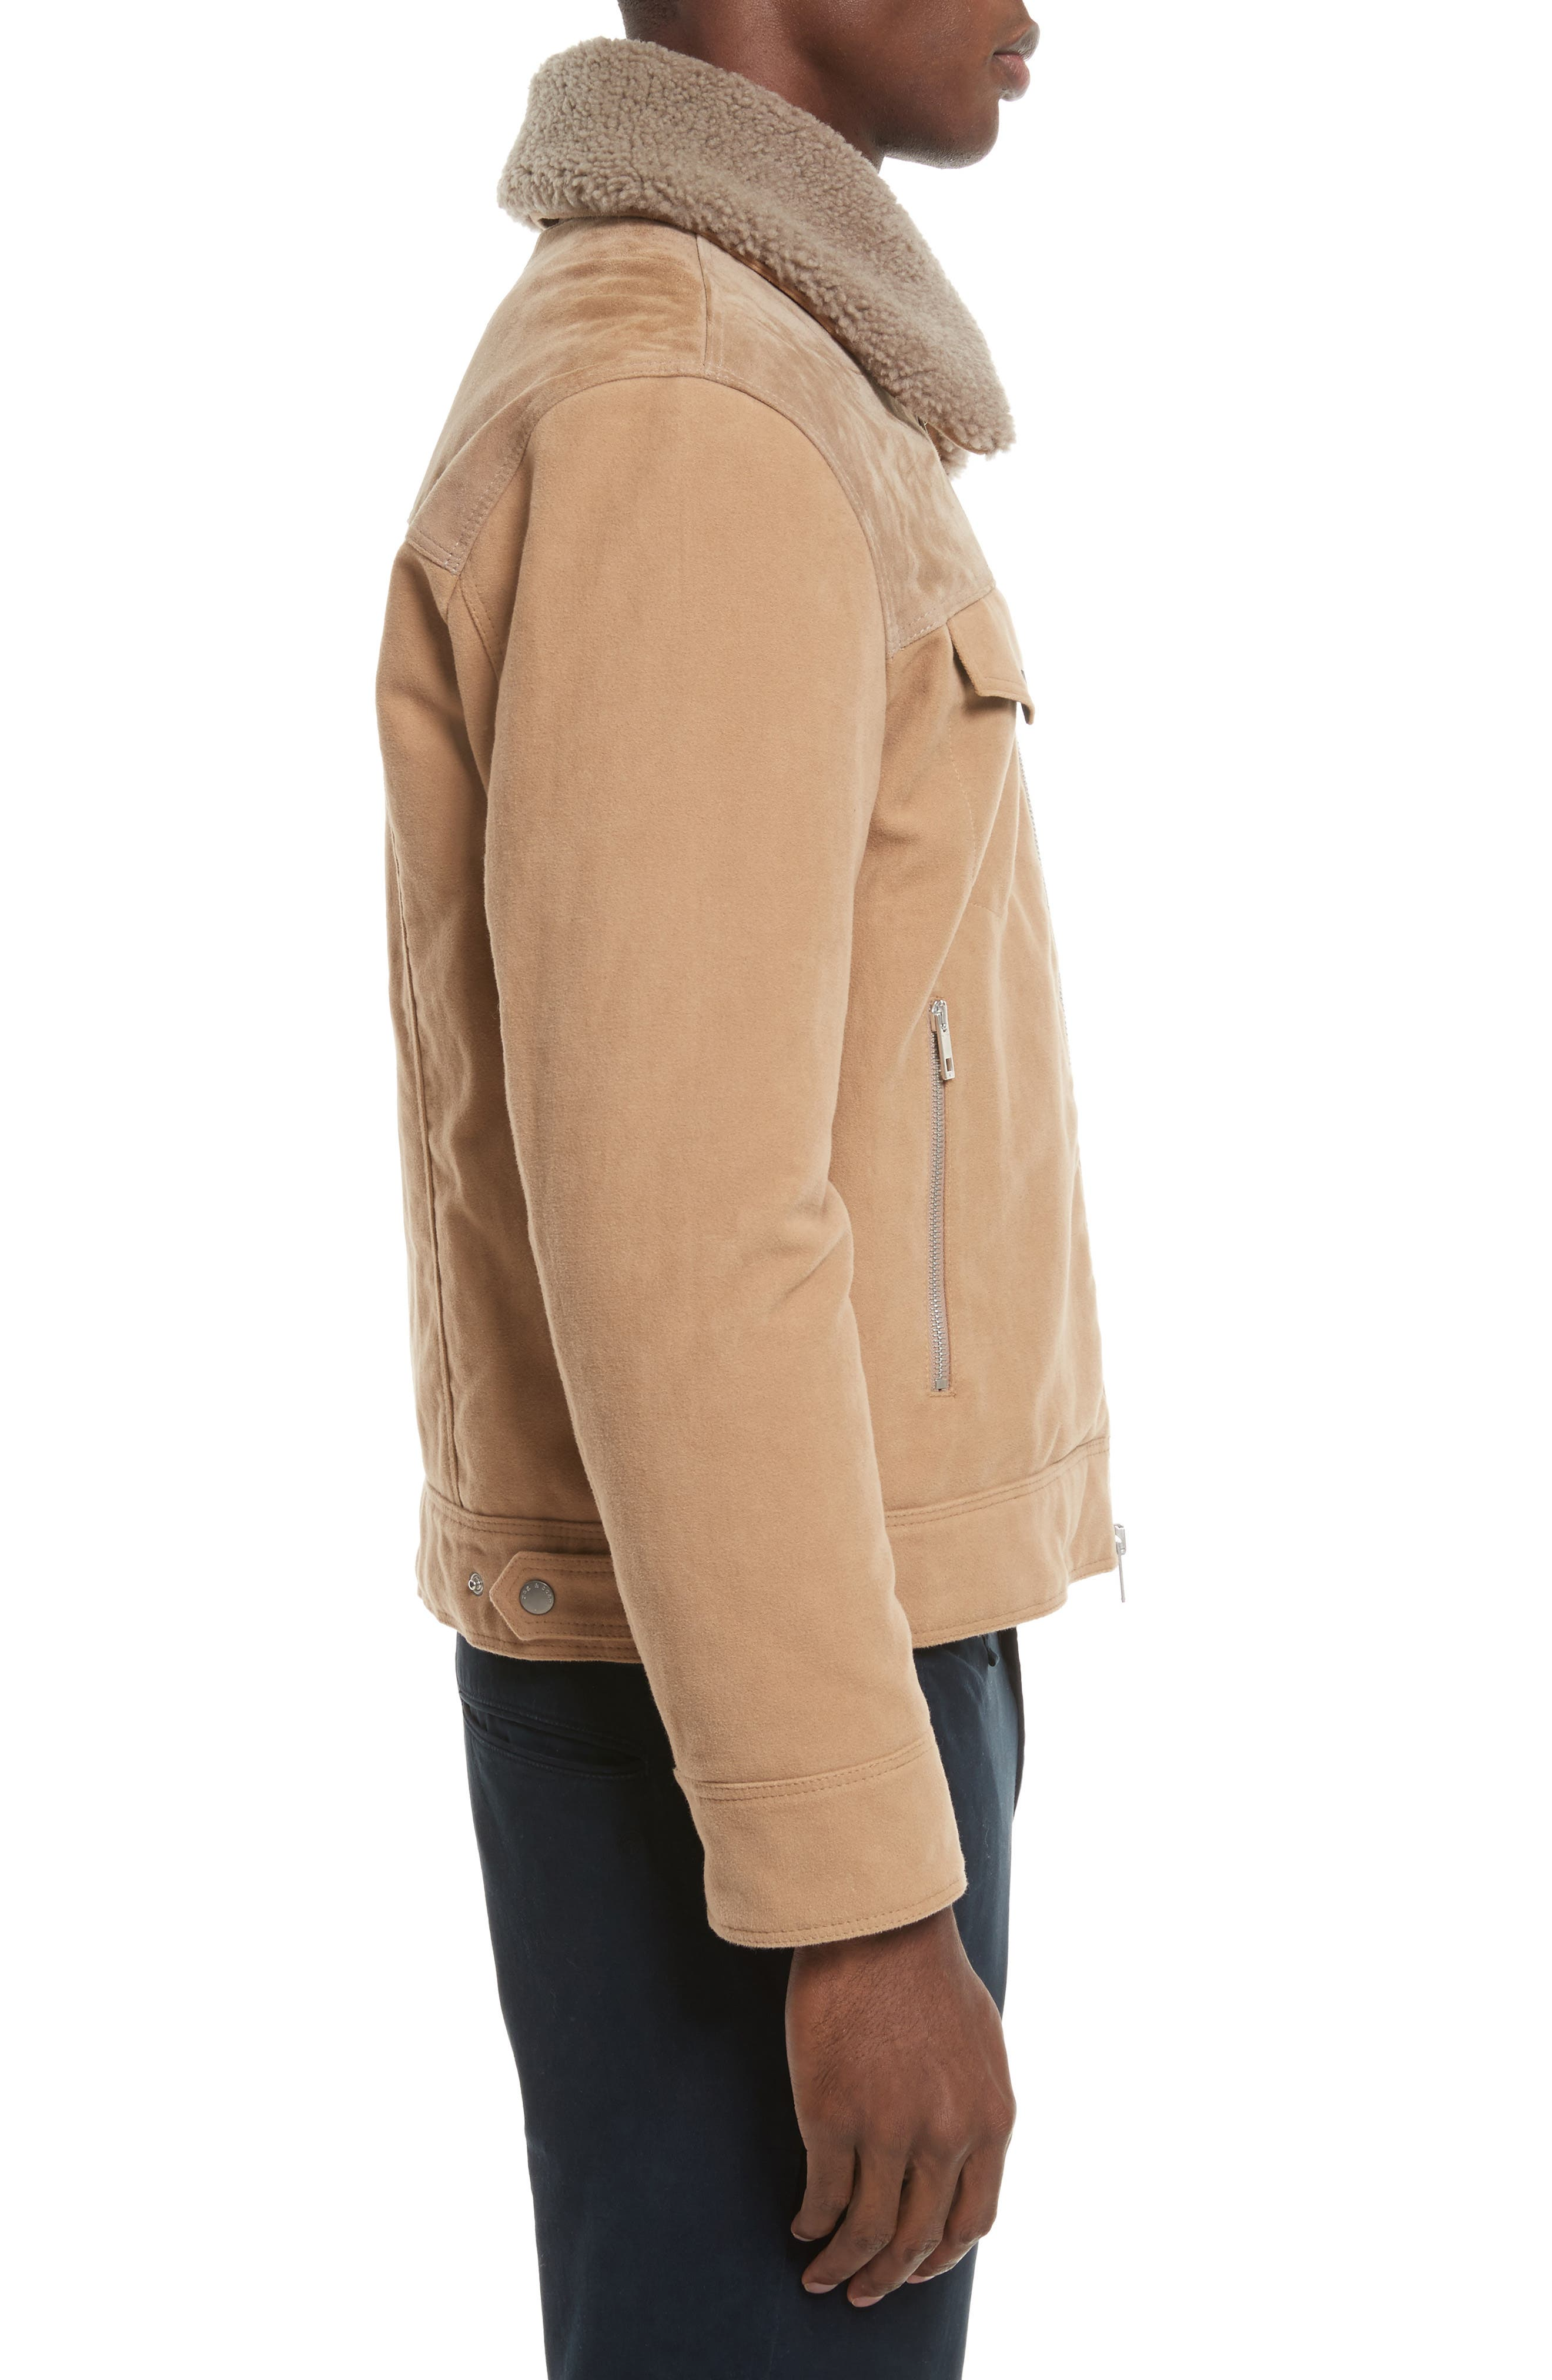 Matthew Work Jacket with Genuine Shearling Collar,                             Alternate thumbnail 3, color,                             Camel